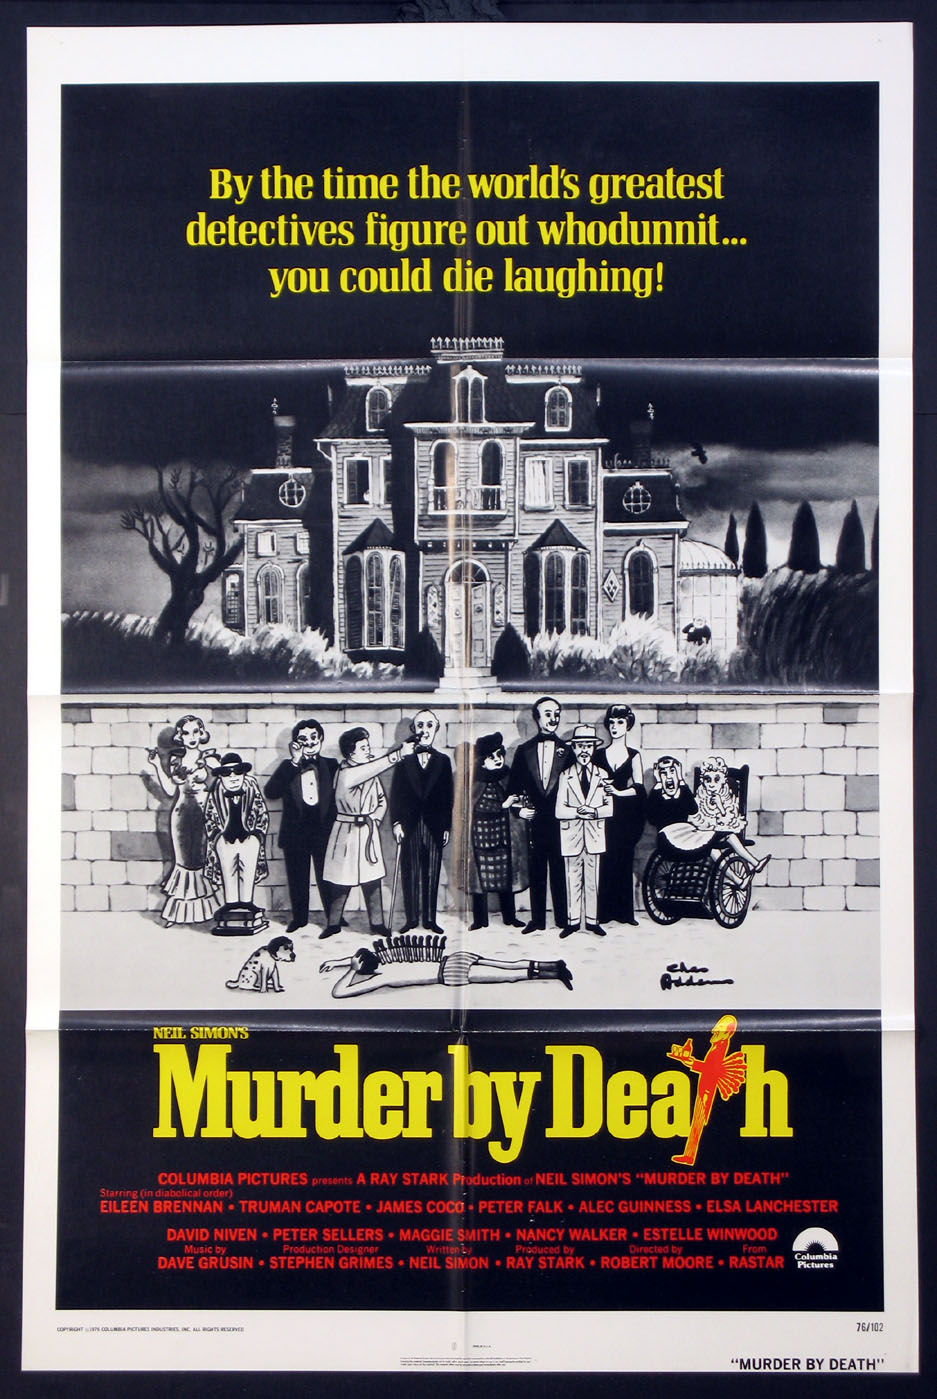 MURDER BY DEATH @ FilmPosters.com